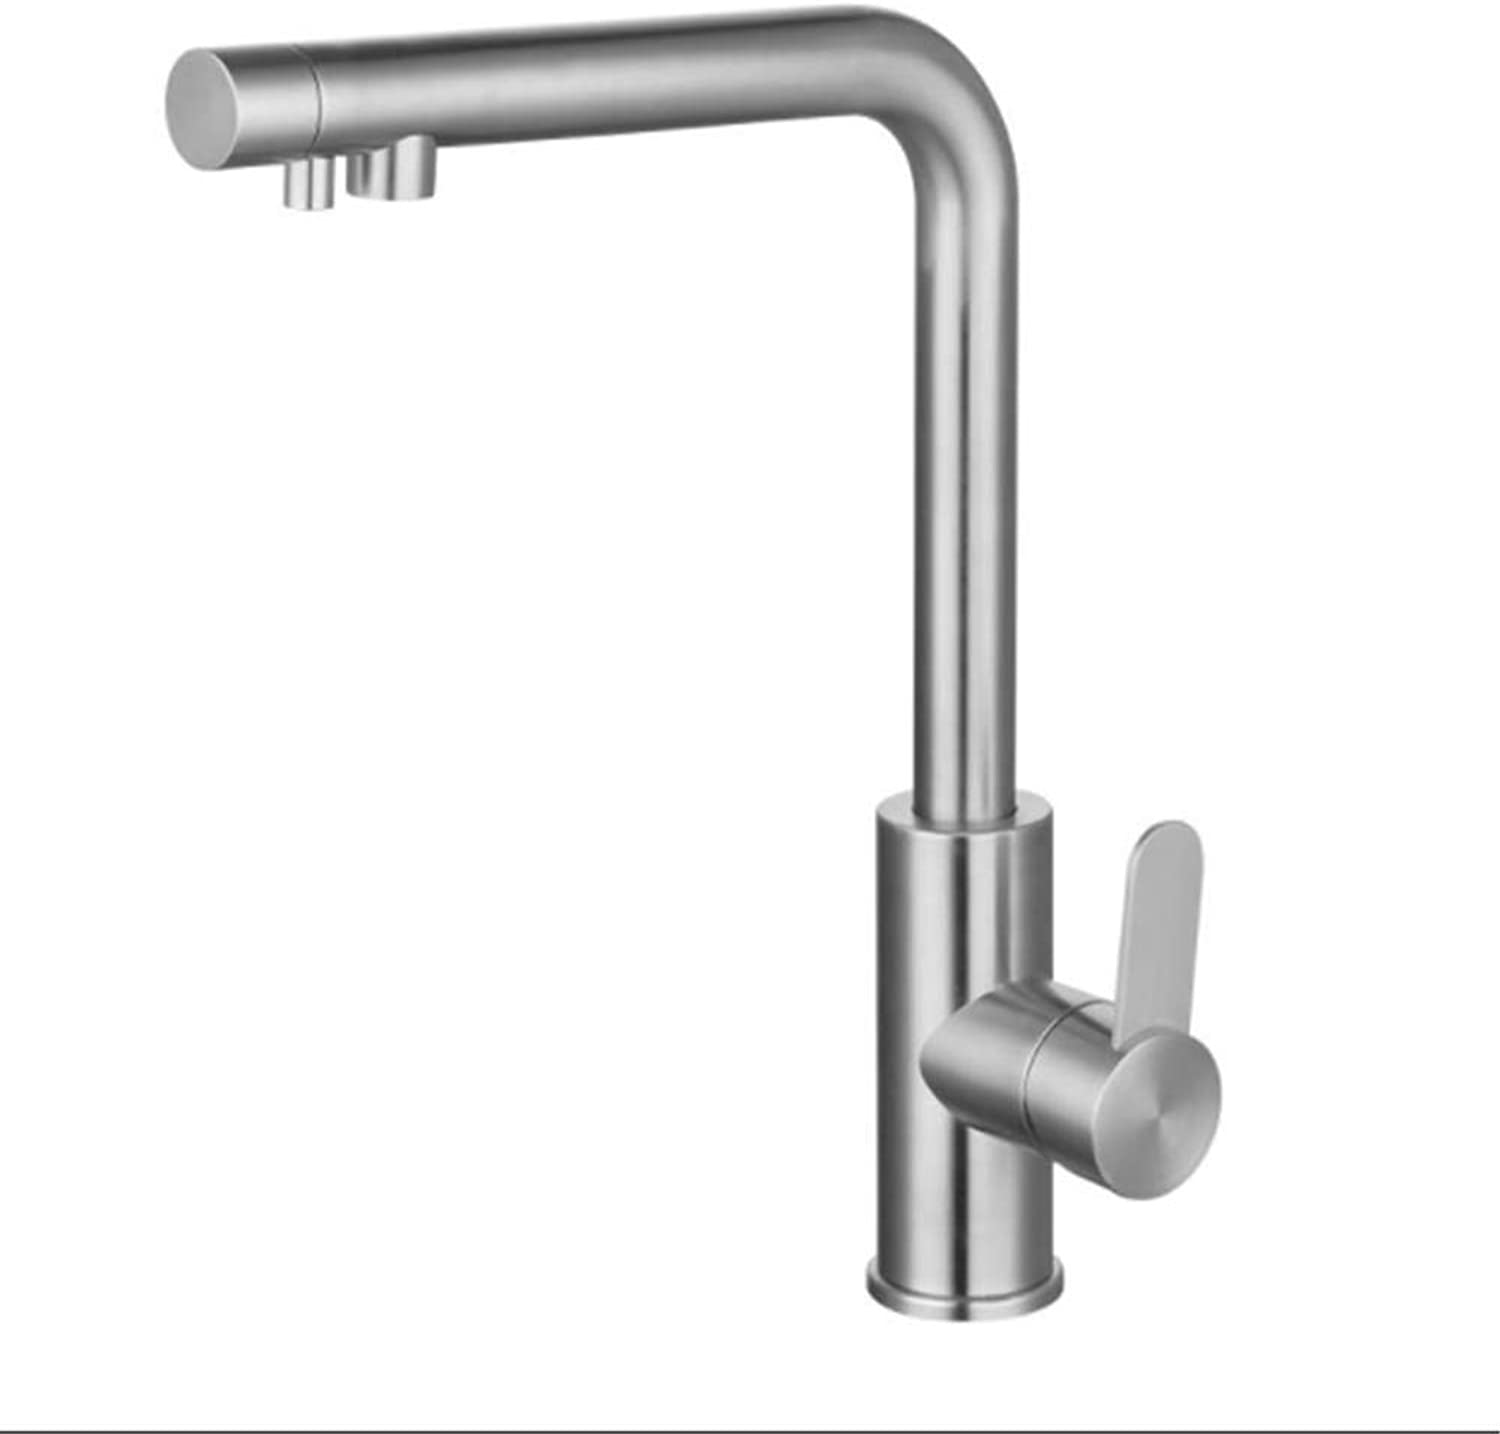 Kitchen Taps Faucetmodern Kitchen Sink Tapsstainless Steelmultifunctional Lead-Free 304 Stainless Steel Kitchen Pure Water Cold Hot Faucet